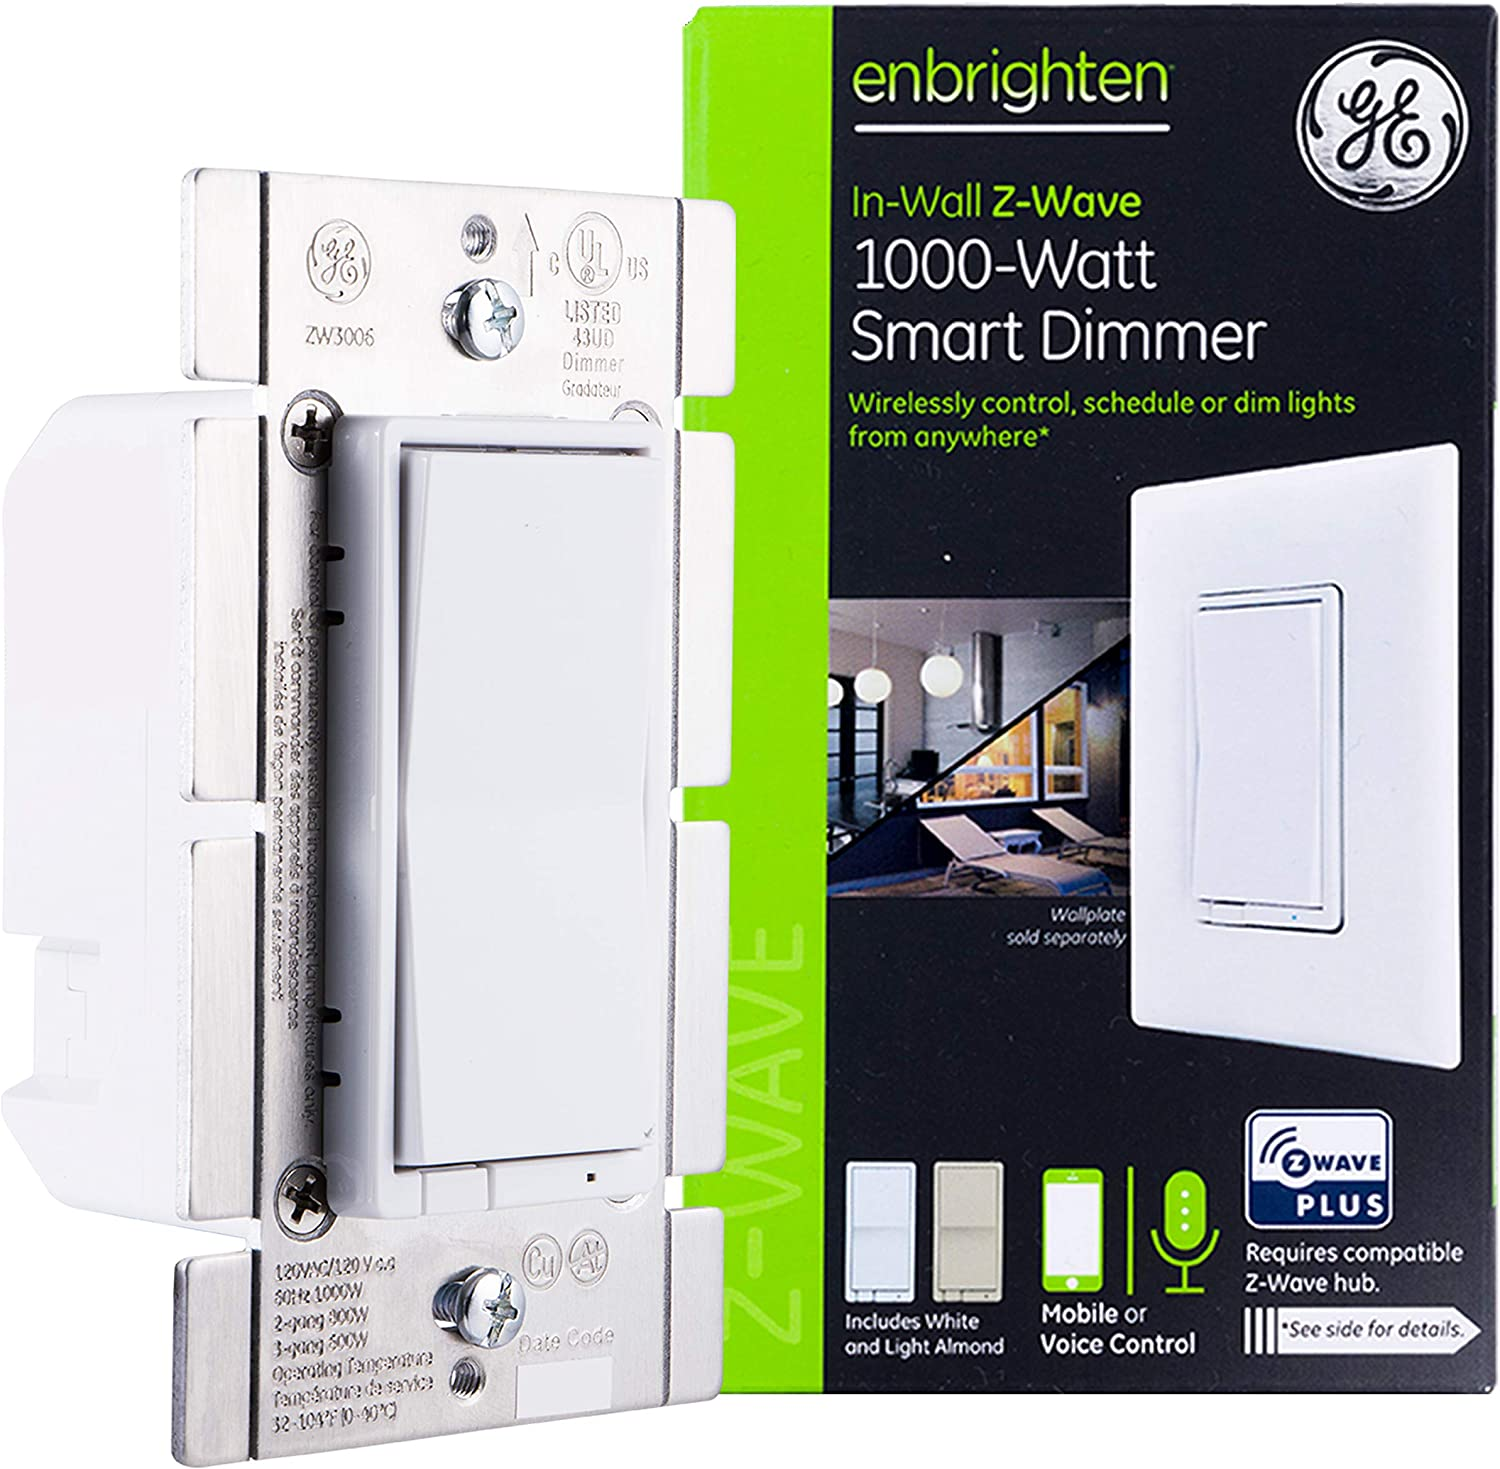 GE Enbrighten Z-Wave Plus 1000-Watt Smart Dimmer, No Neutral Wire Required, Halogen/Incandescent Bulbs Only, Works with Alexa/Google Assistant, ZWave Hub Required, White & Light Almond, 14299